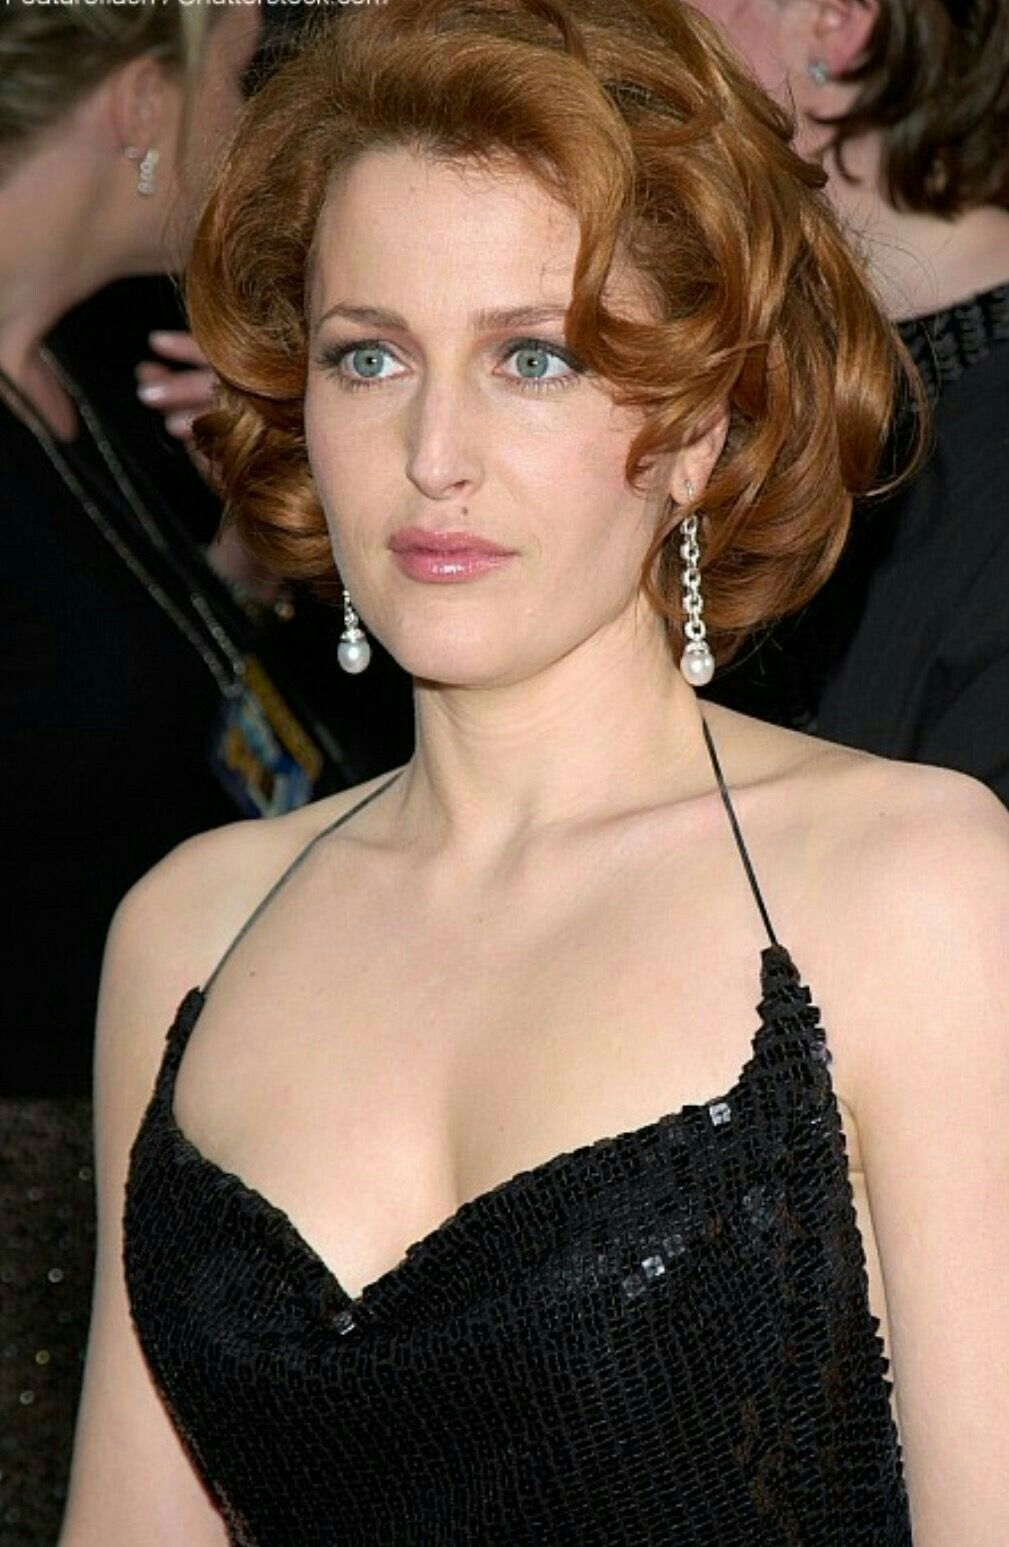 Sideboobs Gillian Anderson naked (81 photos), Pussy, Is a cute, Twitter, cameltoe 2006